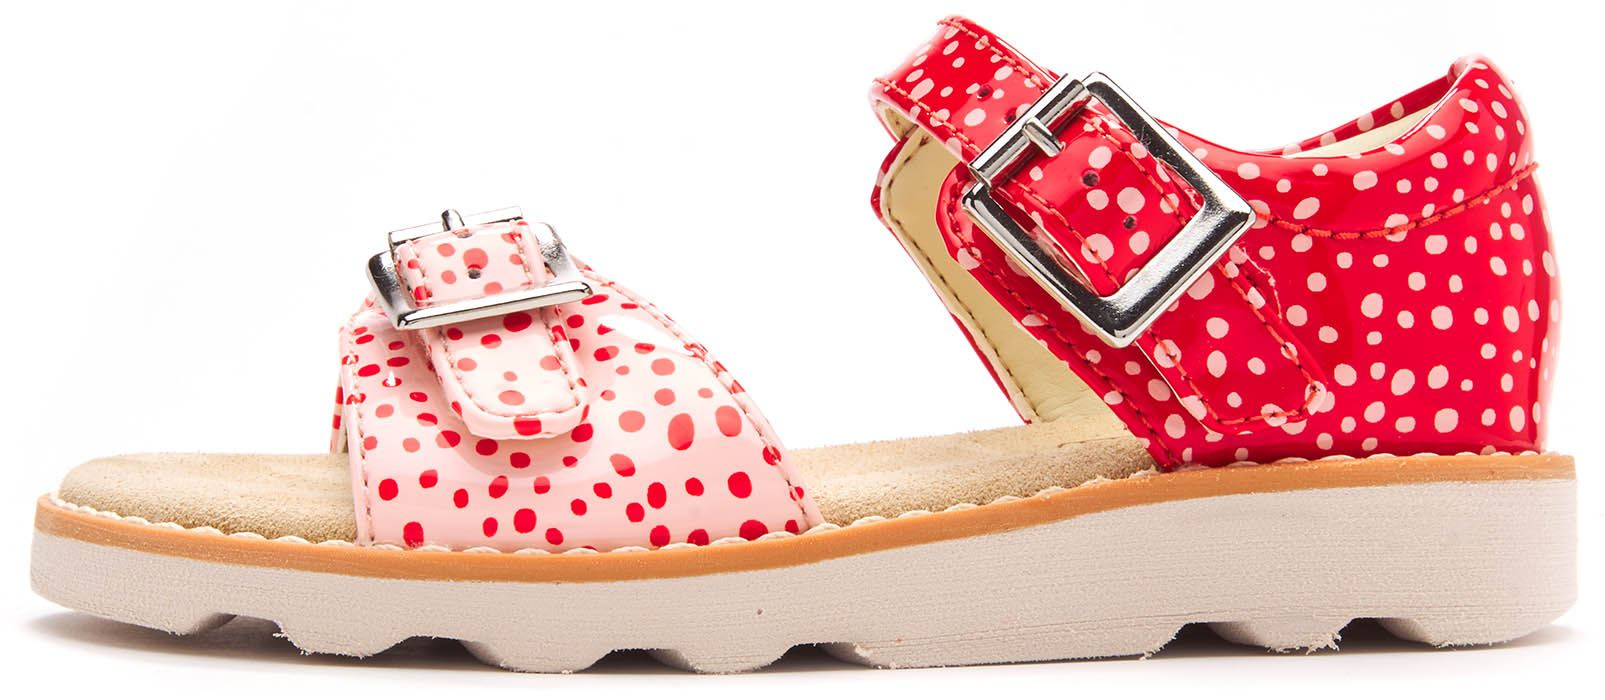 e68e36b5eaf Clarks Crown Bloom Toodler Leather Strappy Buckle Sandals Red Polka Dots